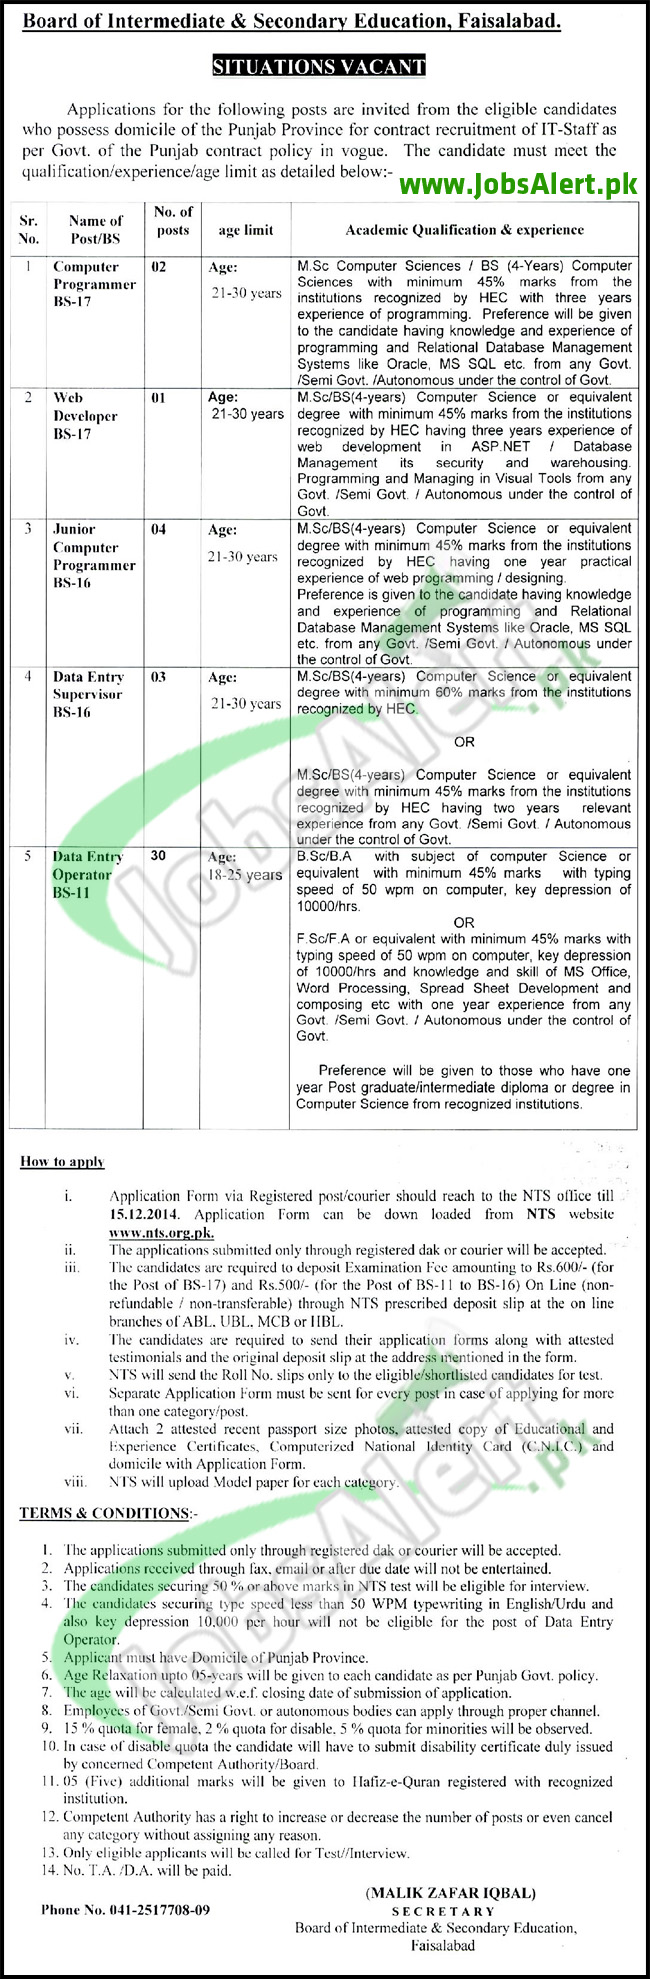 BISE Faisalabad Board Jobs 2014 BS-17 to BS-11 Male & Female NTS Form